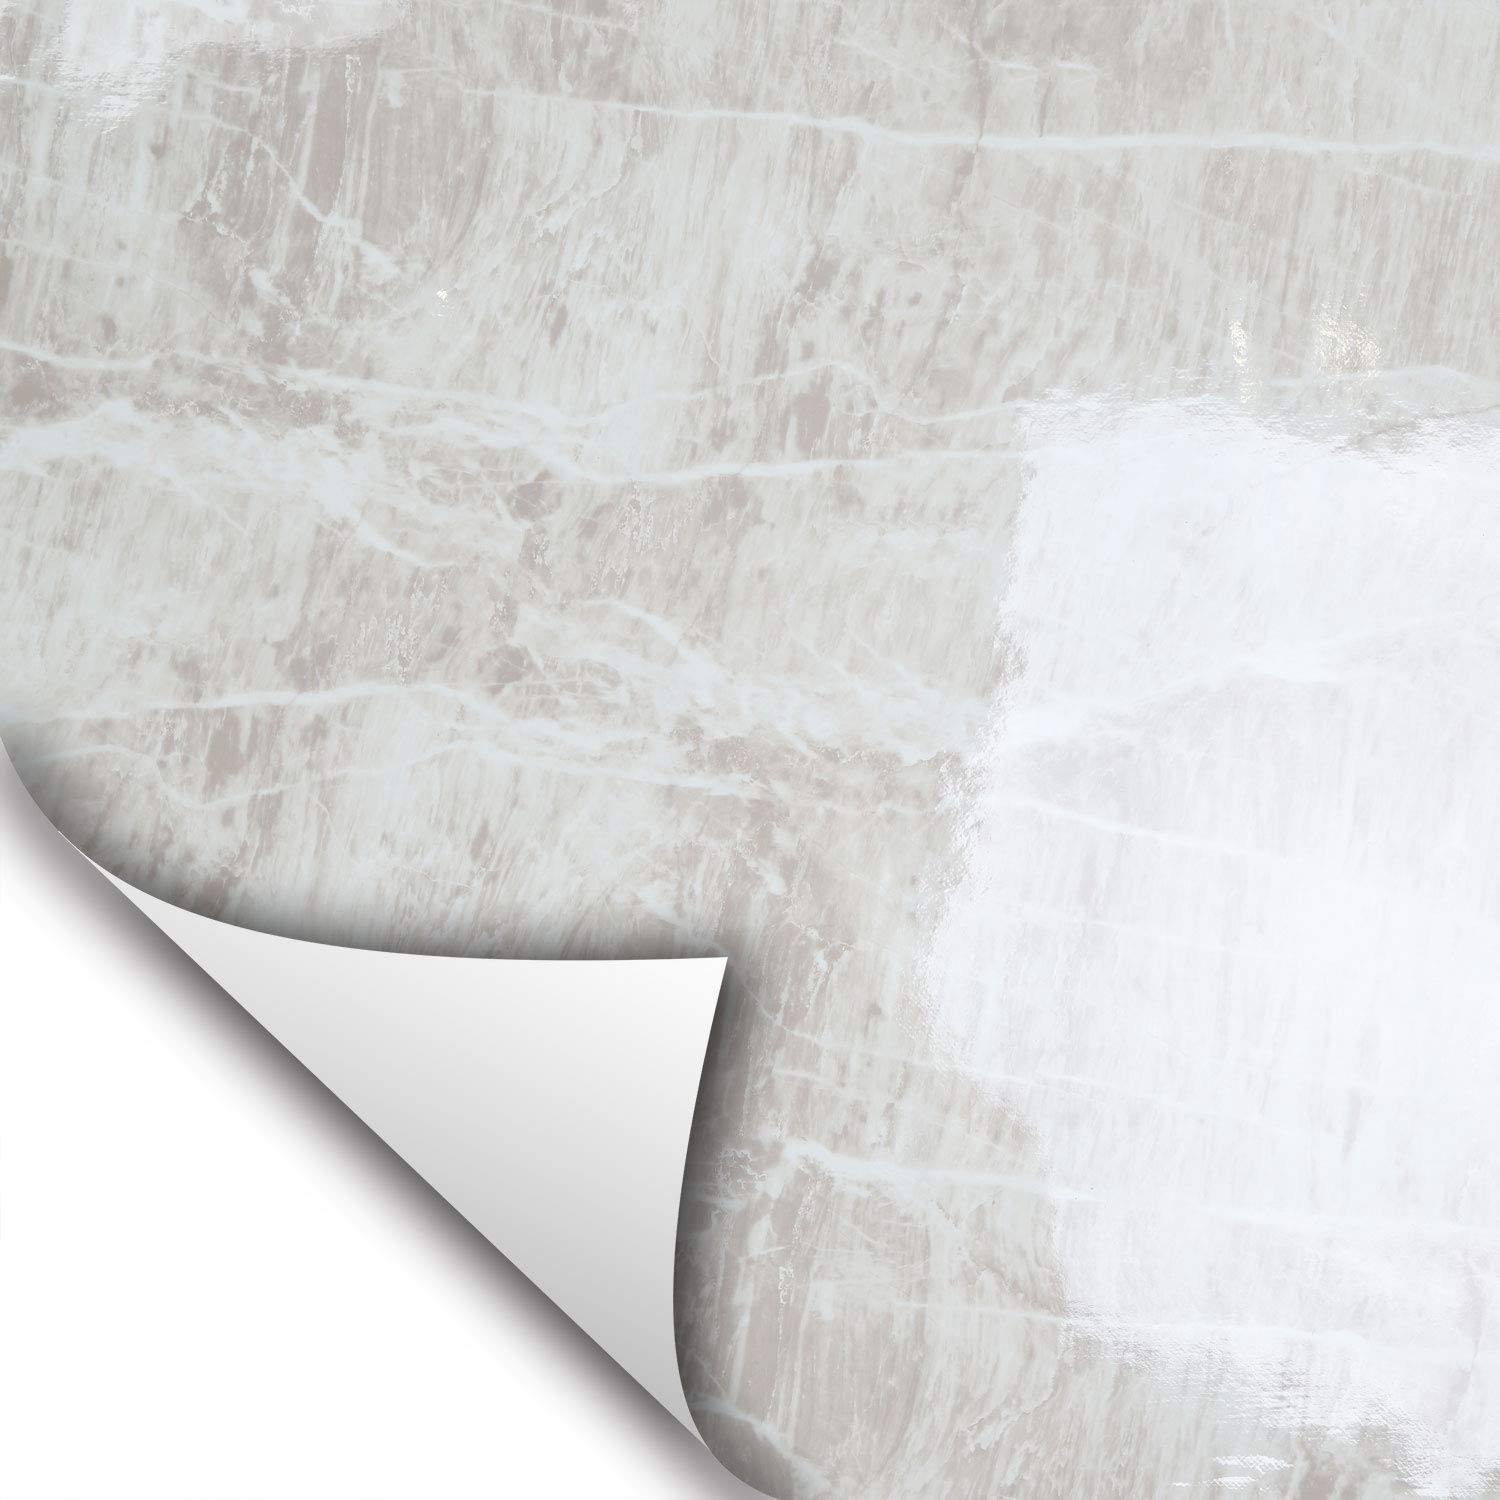 Wallstickery Marble Paper Modern Beige Grey Gloss Granite Natural Stone Pattern Peel And Stick Counter Top Kitchen Cabinets Locker 6 56 Ft X 1 47 Ft Amazon Com,Best Buy Kitchen Appliances